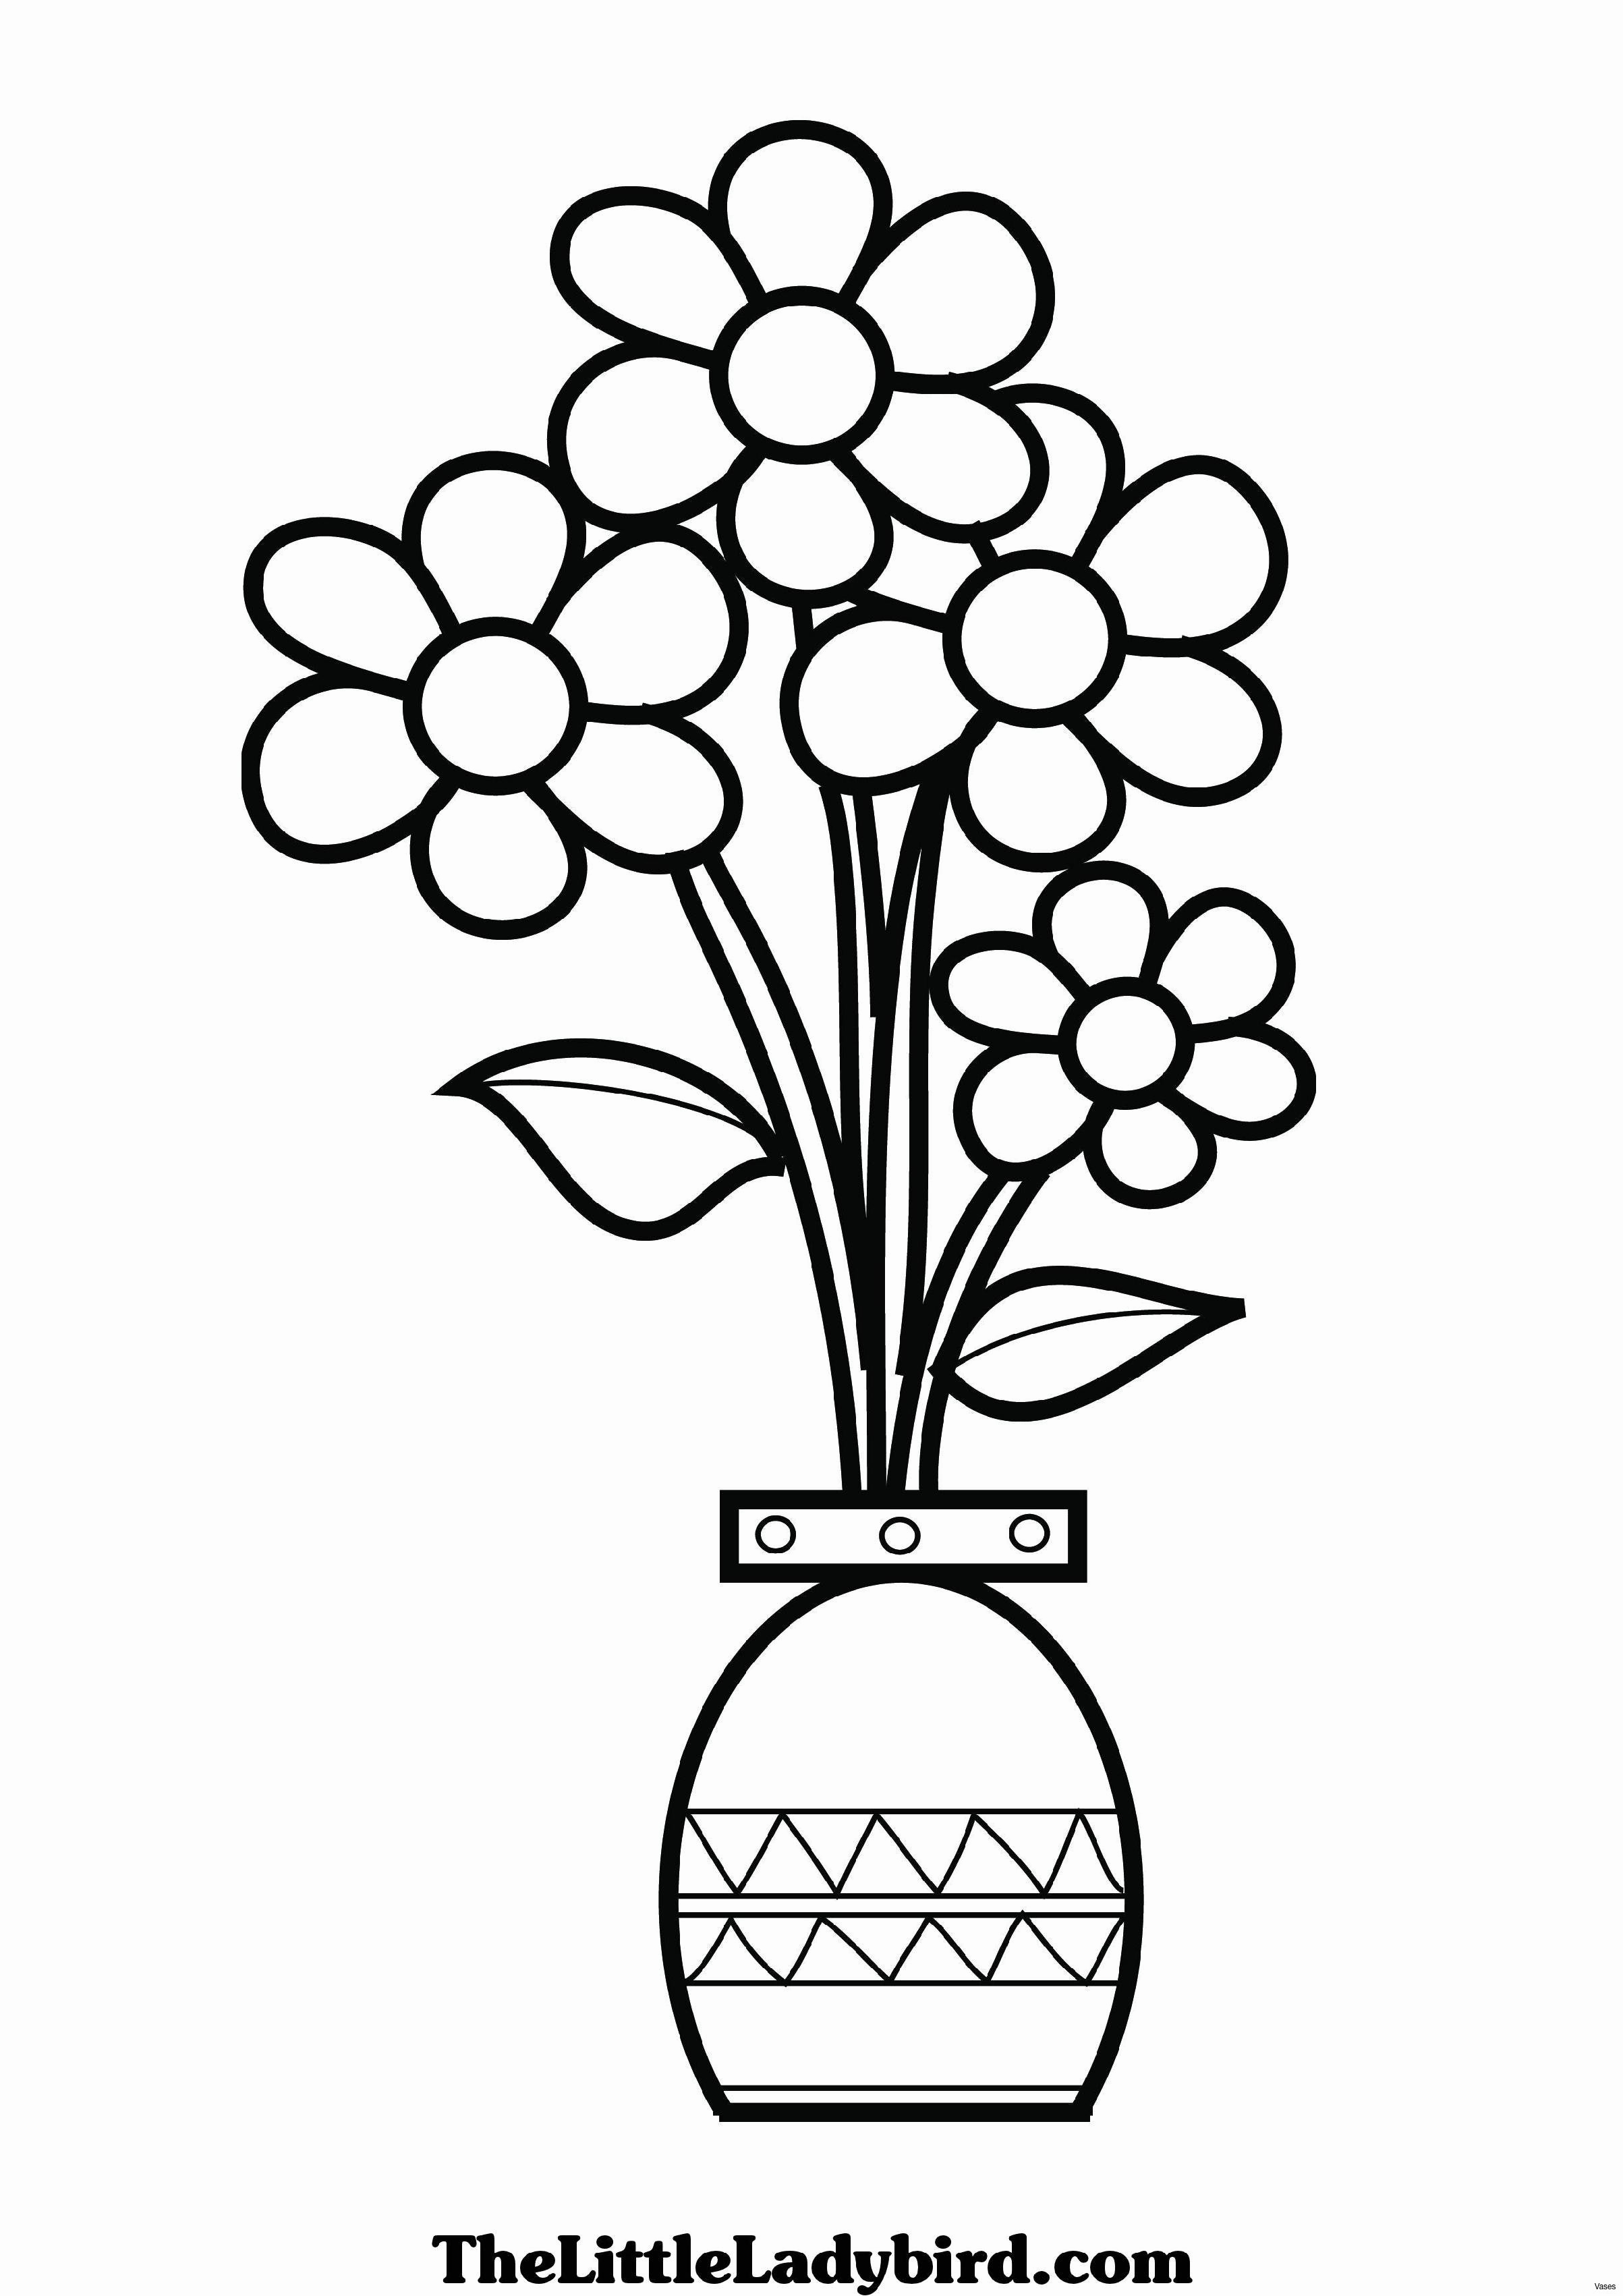 flower vase pictures to color vase coloring pages download and print vase coloring pages color pictures flower to vase